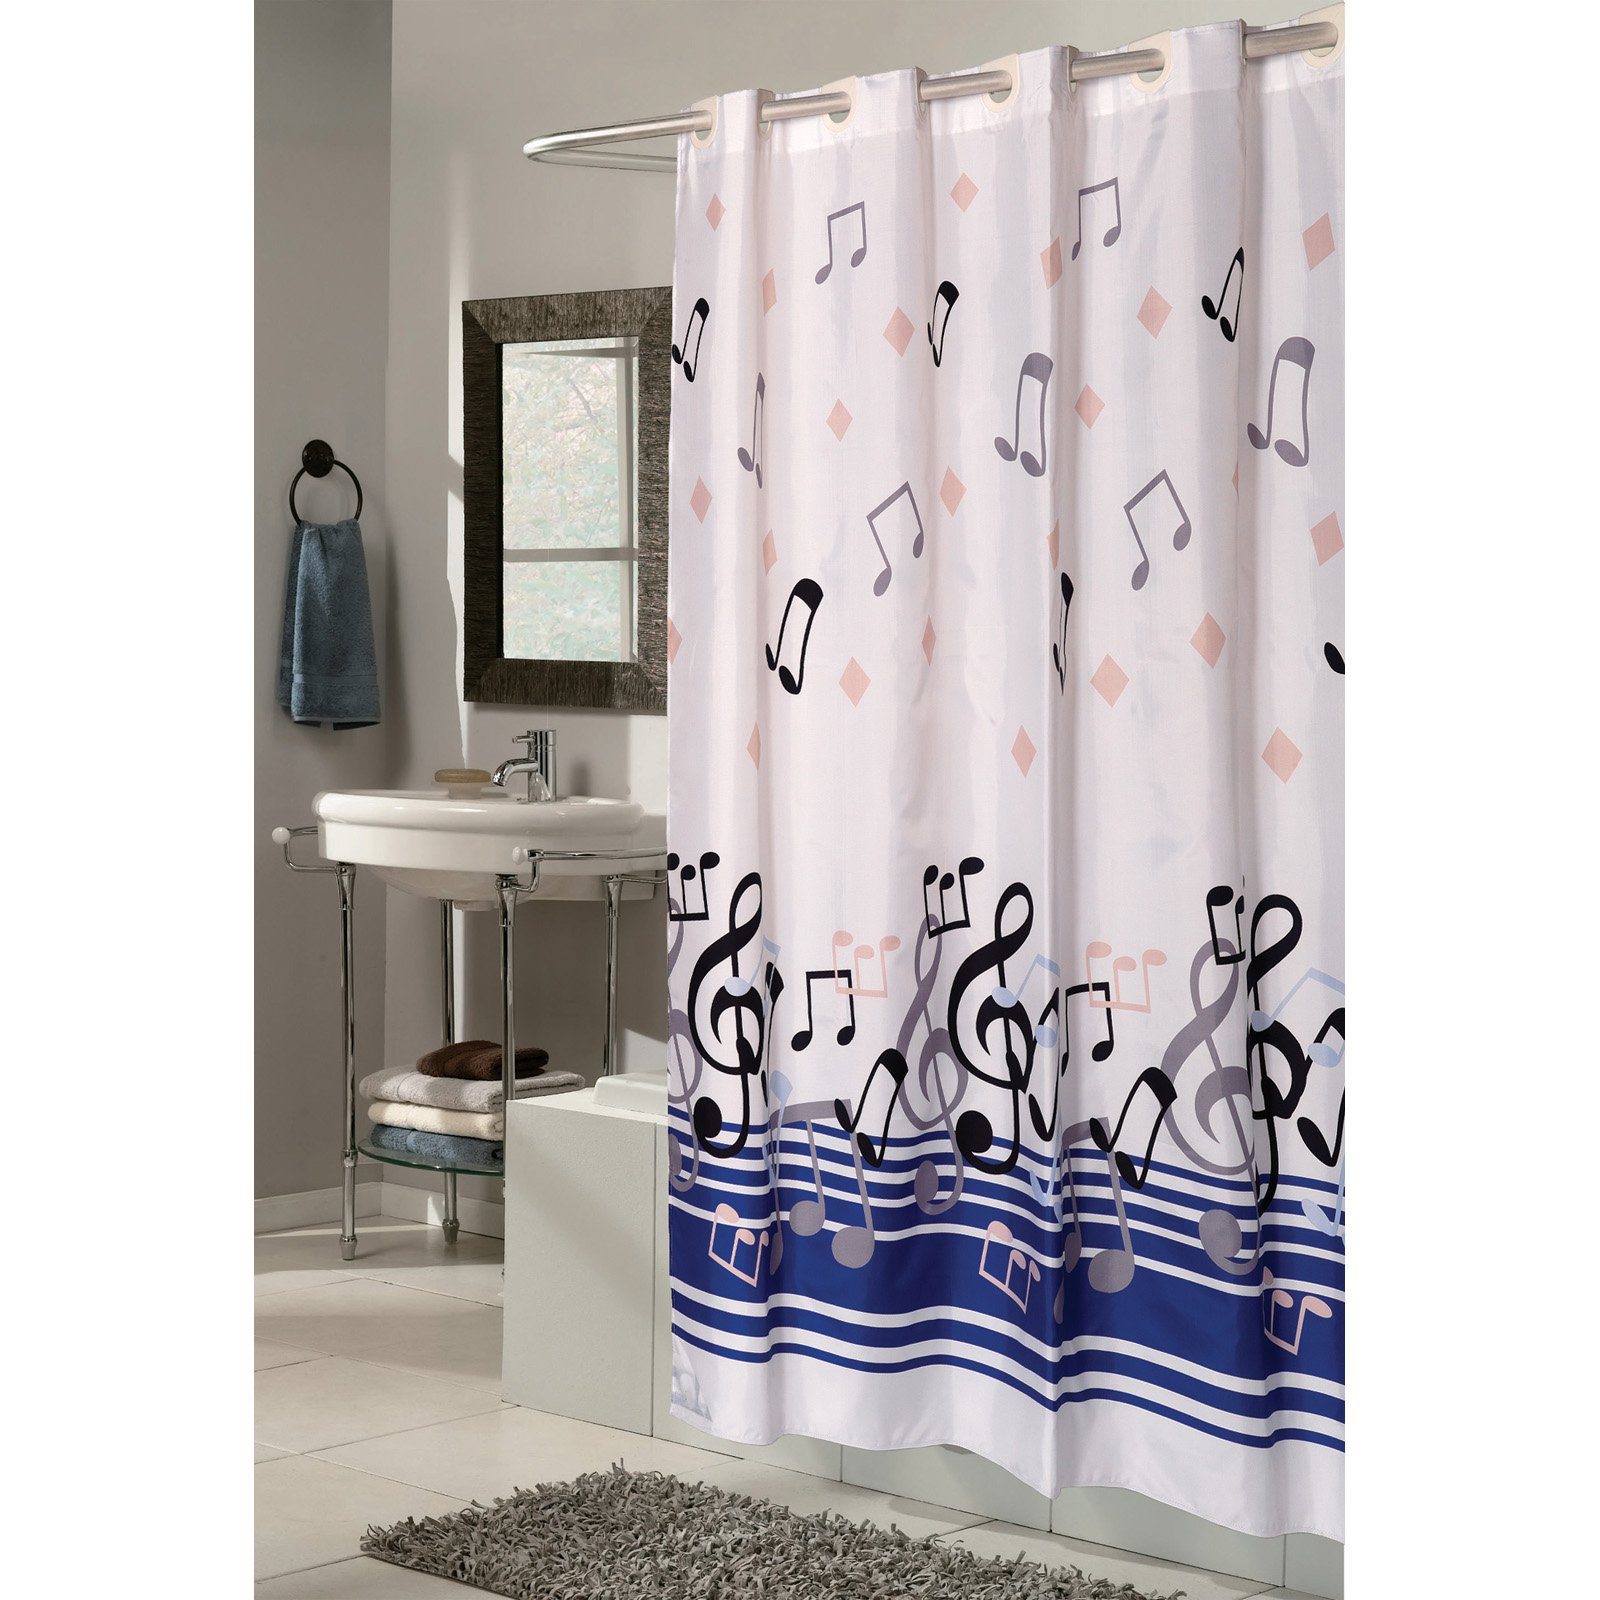 Ez On Fabric Shower Curtain With Built In Shower Curtain Hooks Extra Wide Size 108 Wide X 72 Long Pattern Name Blue Note